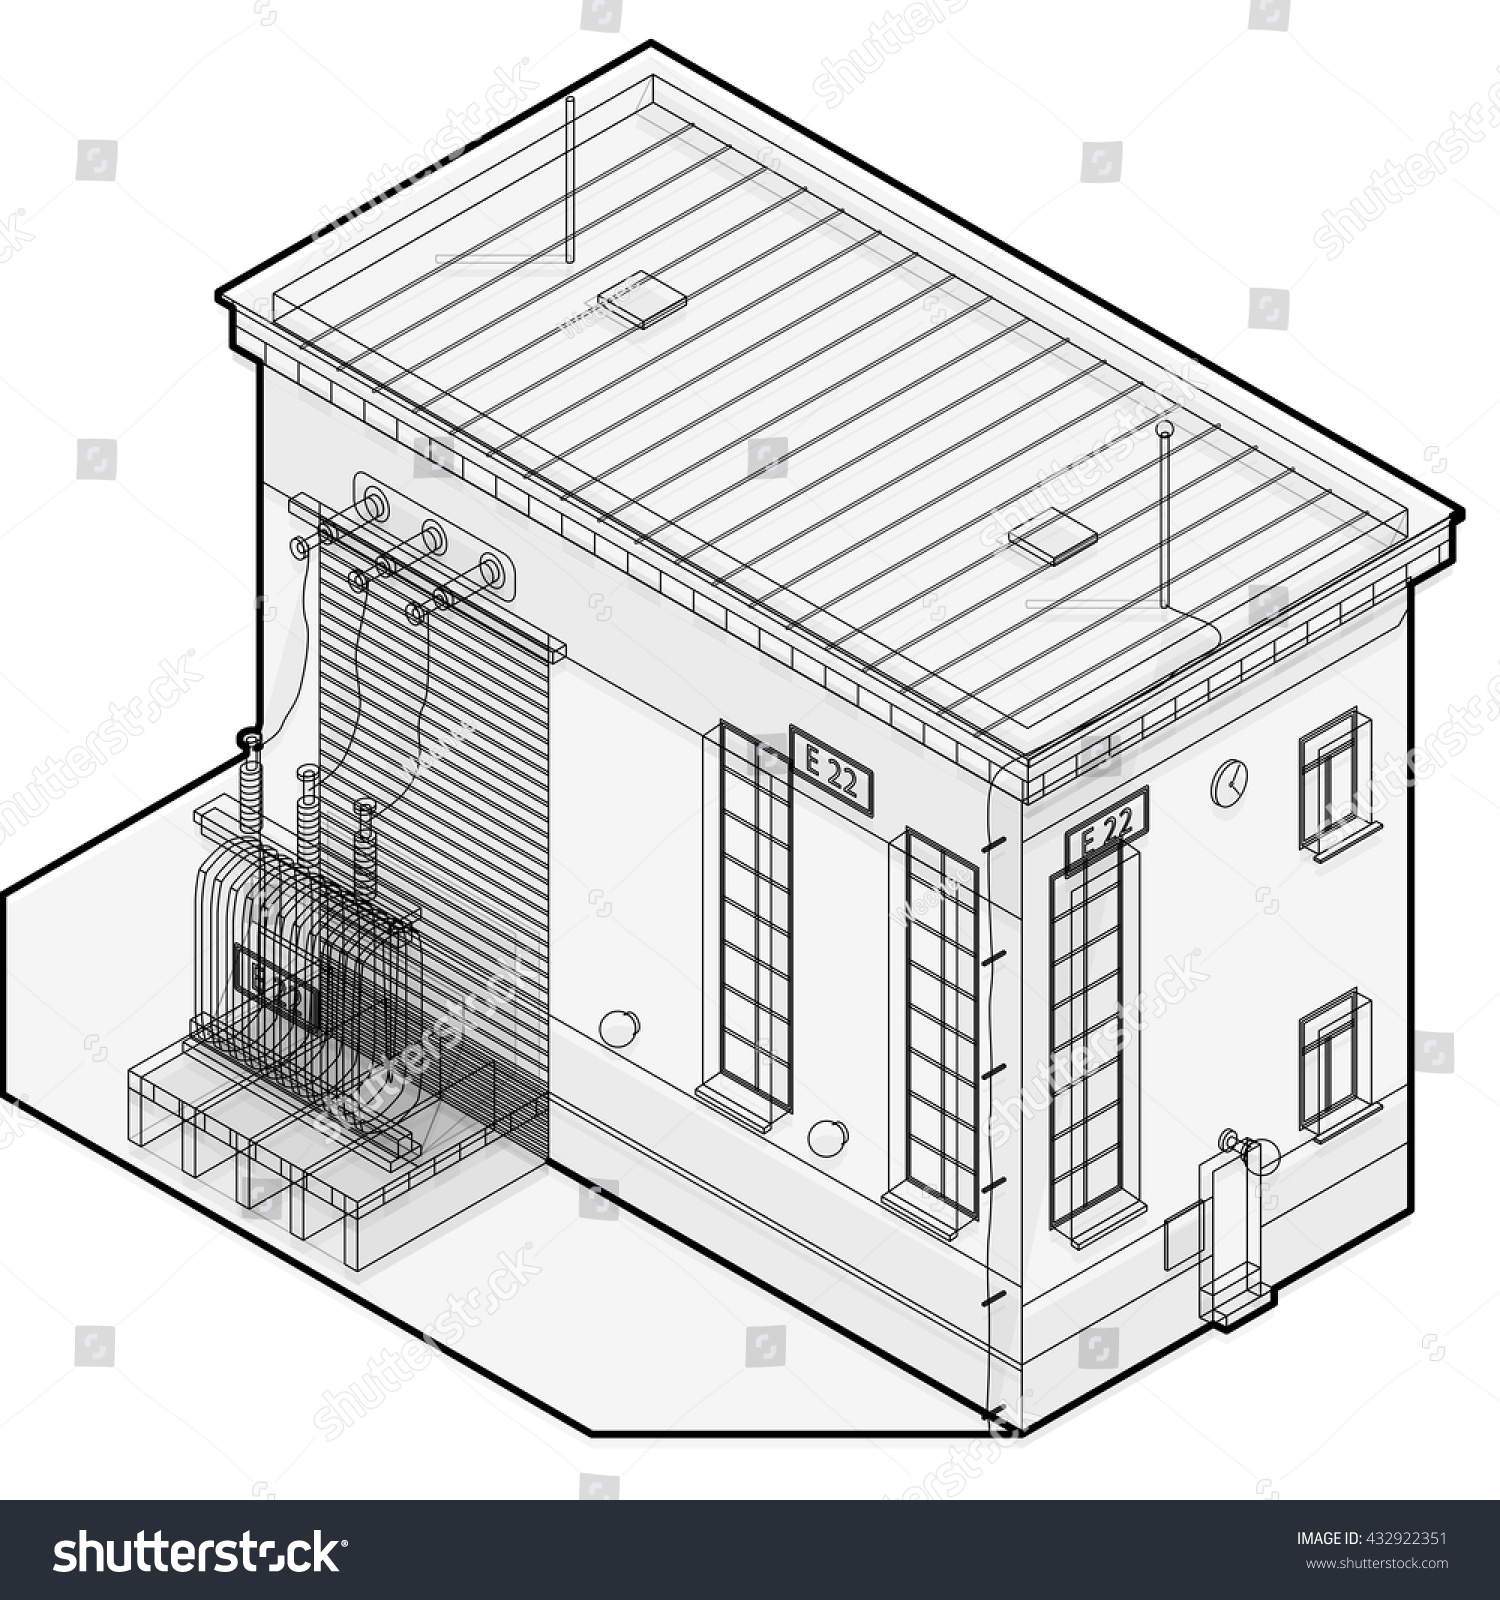 Electric Transformer Isometric Building Info Graphic Stock Vector Isolation Wiring Diagram Looking For An Advice To Build Outline High Voltage Power Station Old Plant